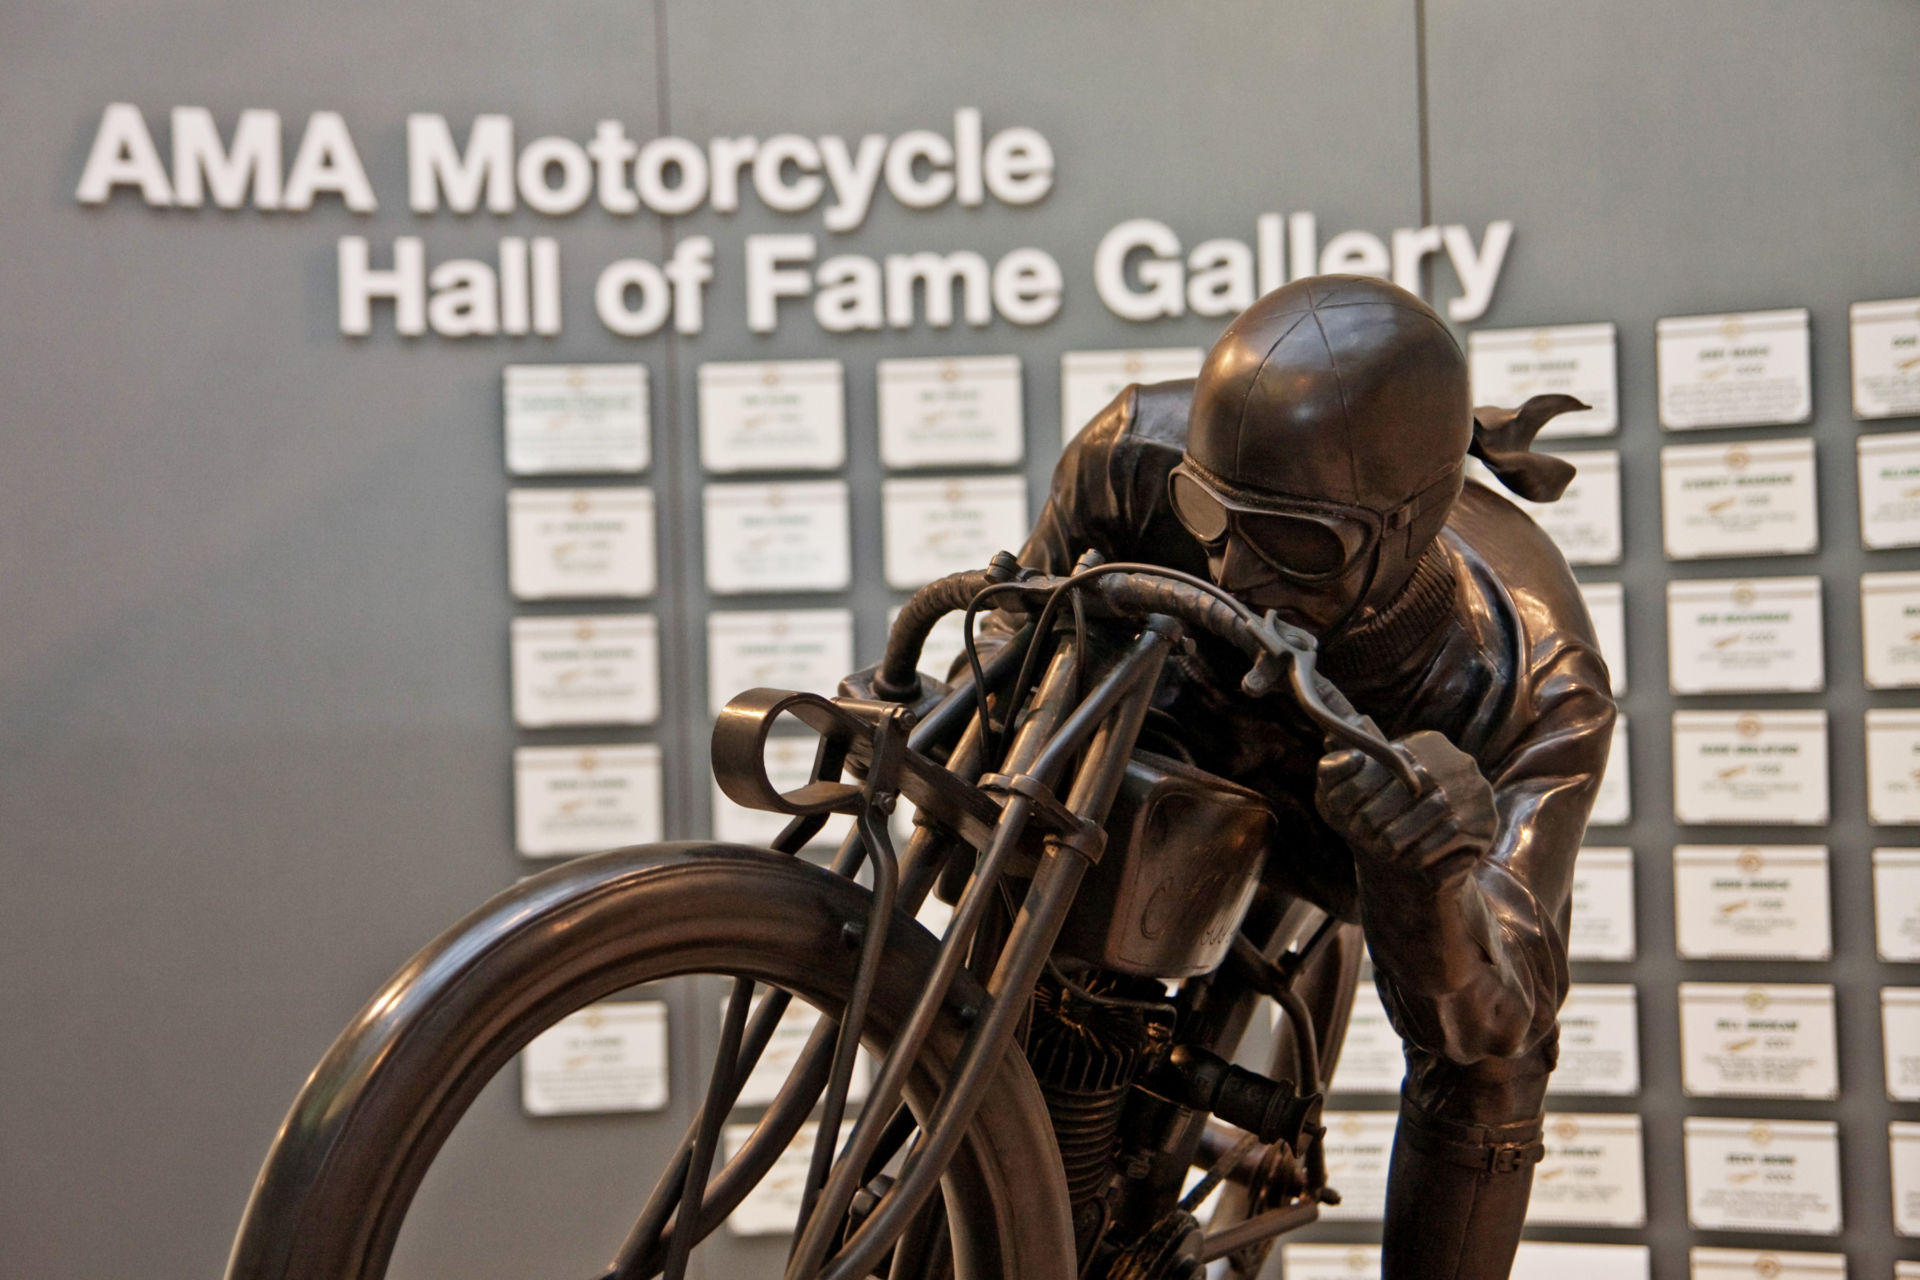 The AMA Motorcycle Hall of Fame